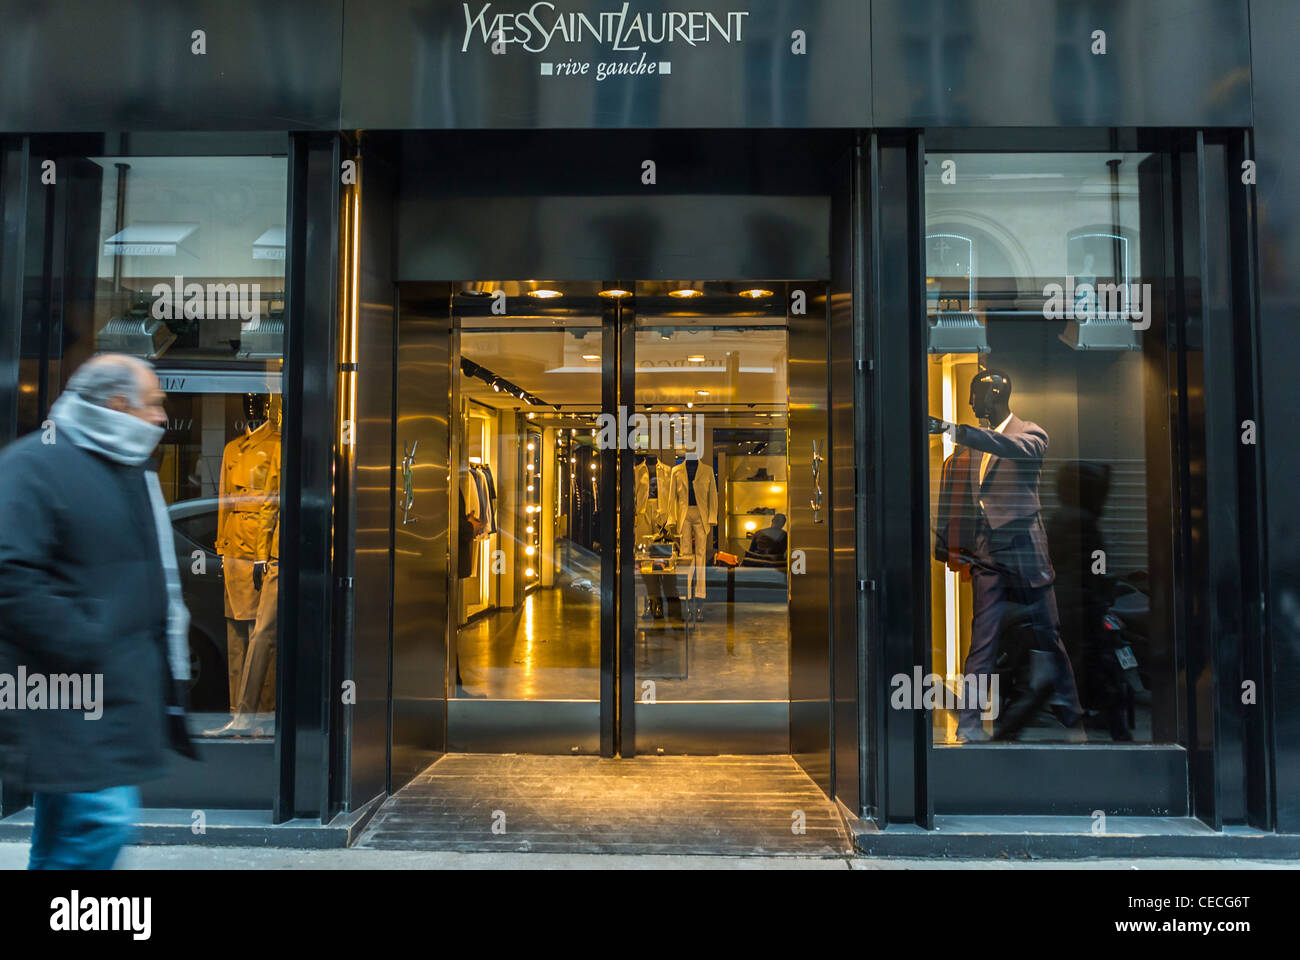 763a5db19336b Paris, France, Luxury Fashion Brands, Shop Front,